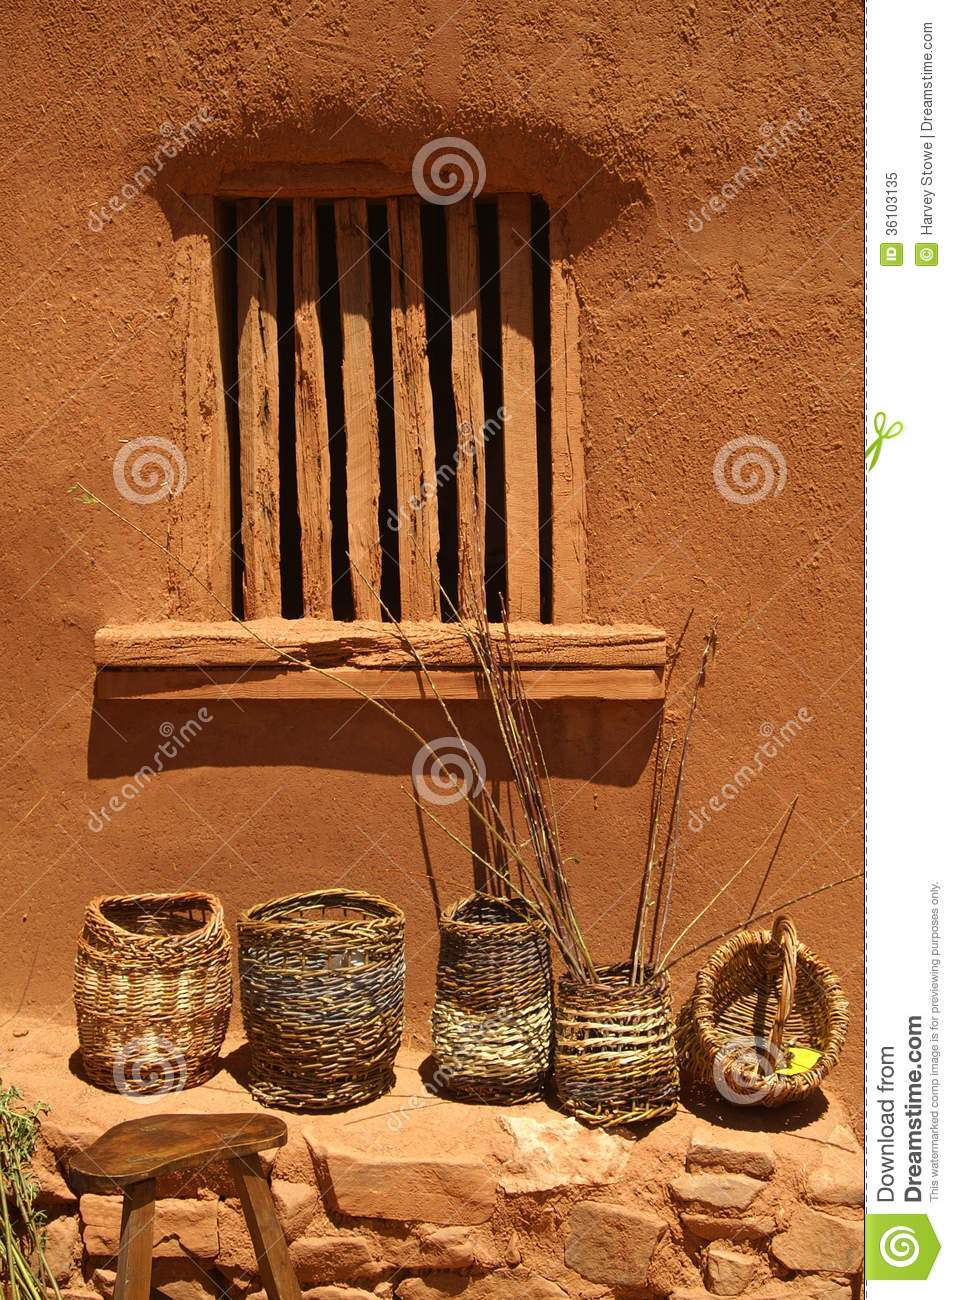 Baskets Against An Adobe Wall. Stock Image - Image of bricks, wall ...